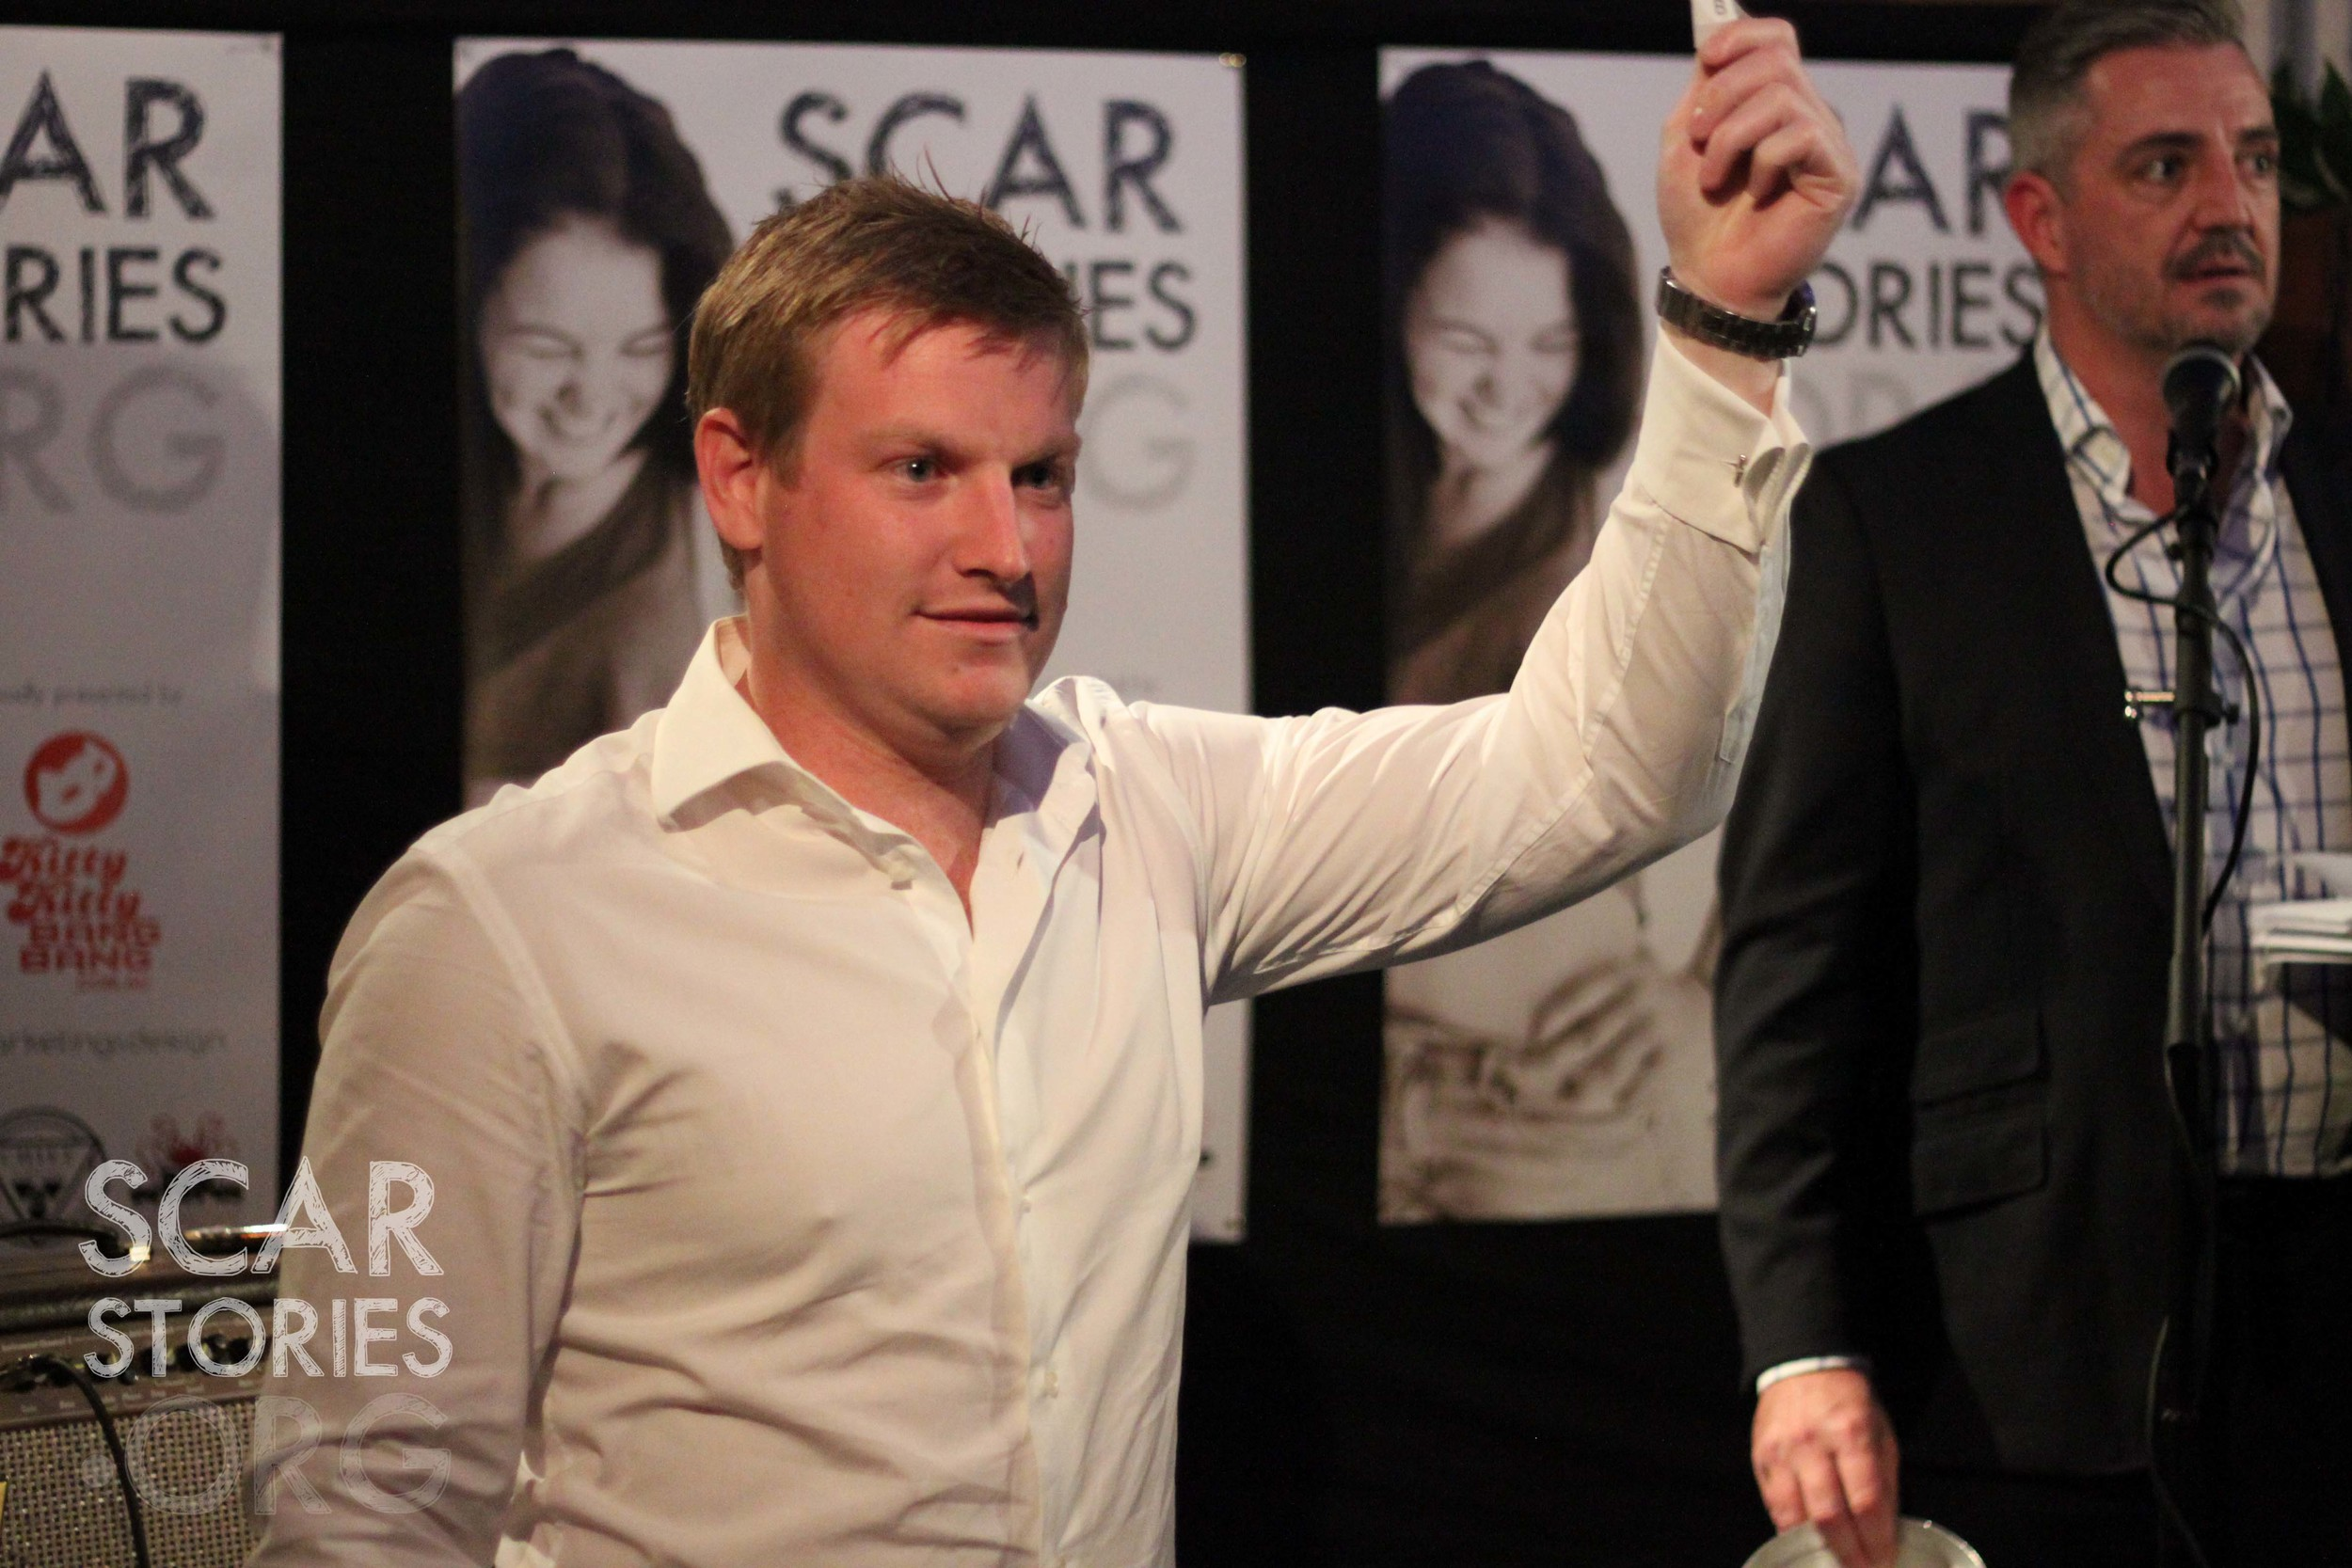 Scar Stories Book Launch-43.jpg